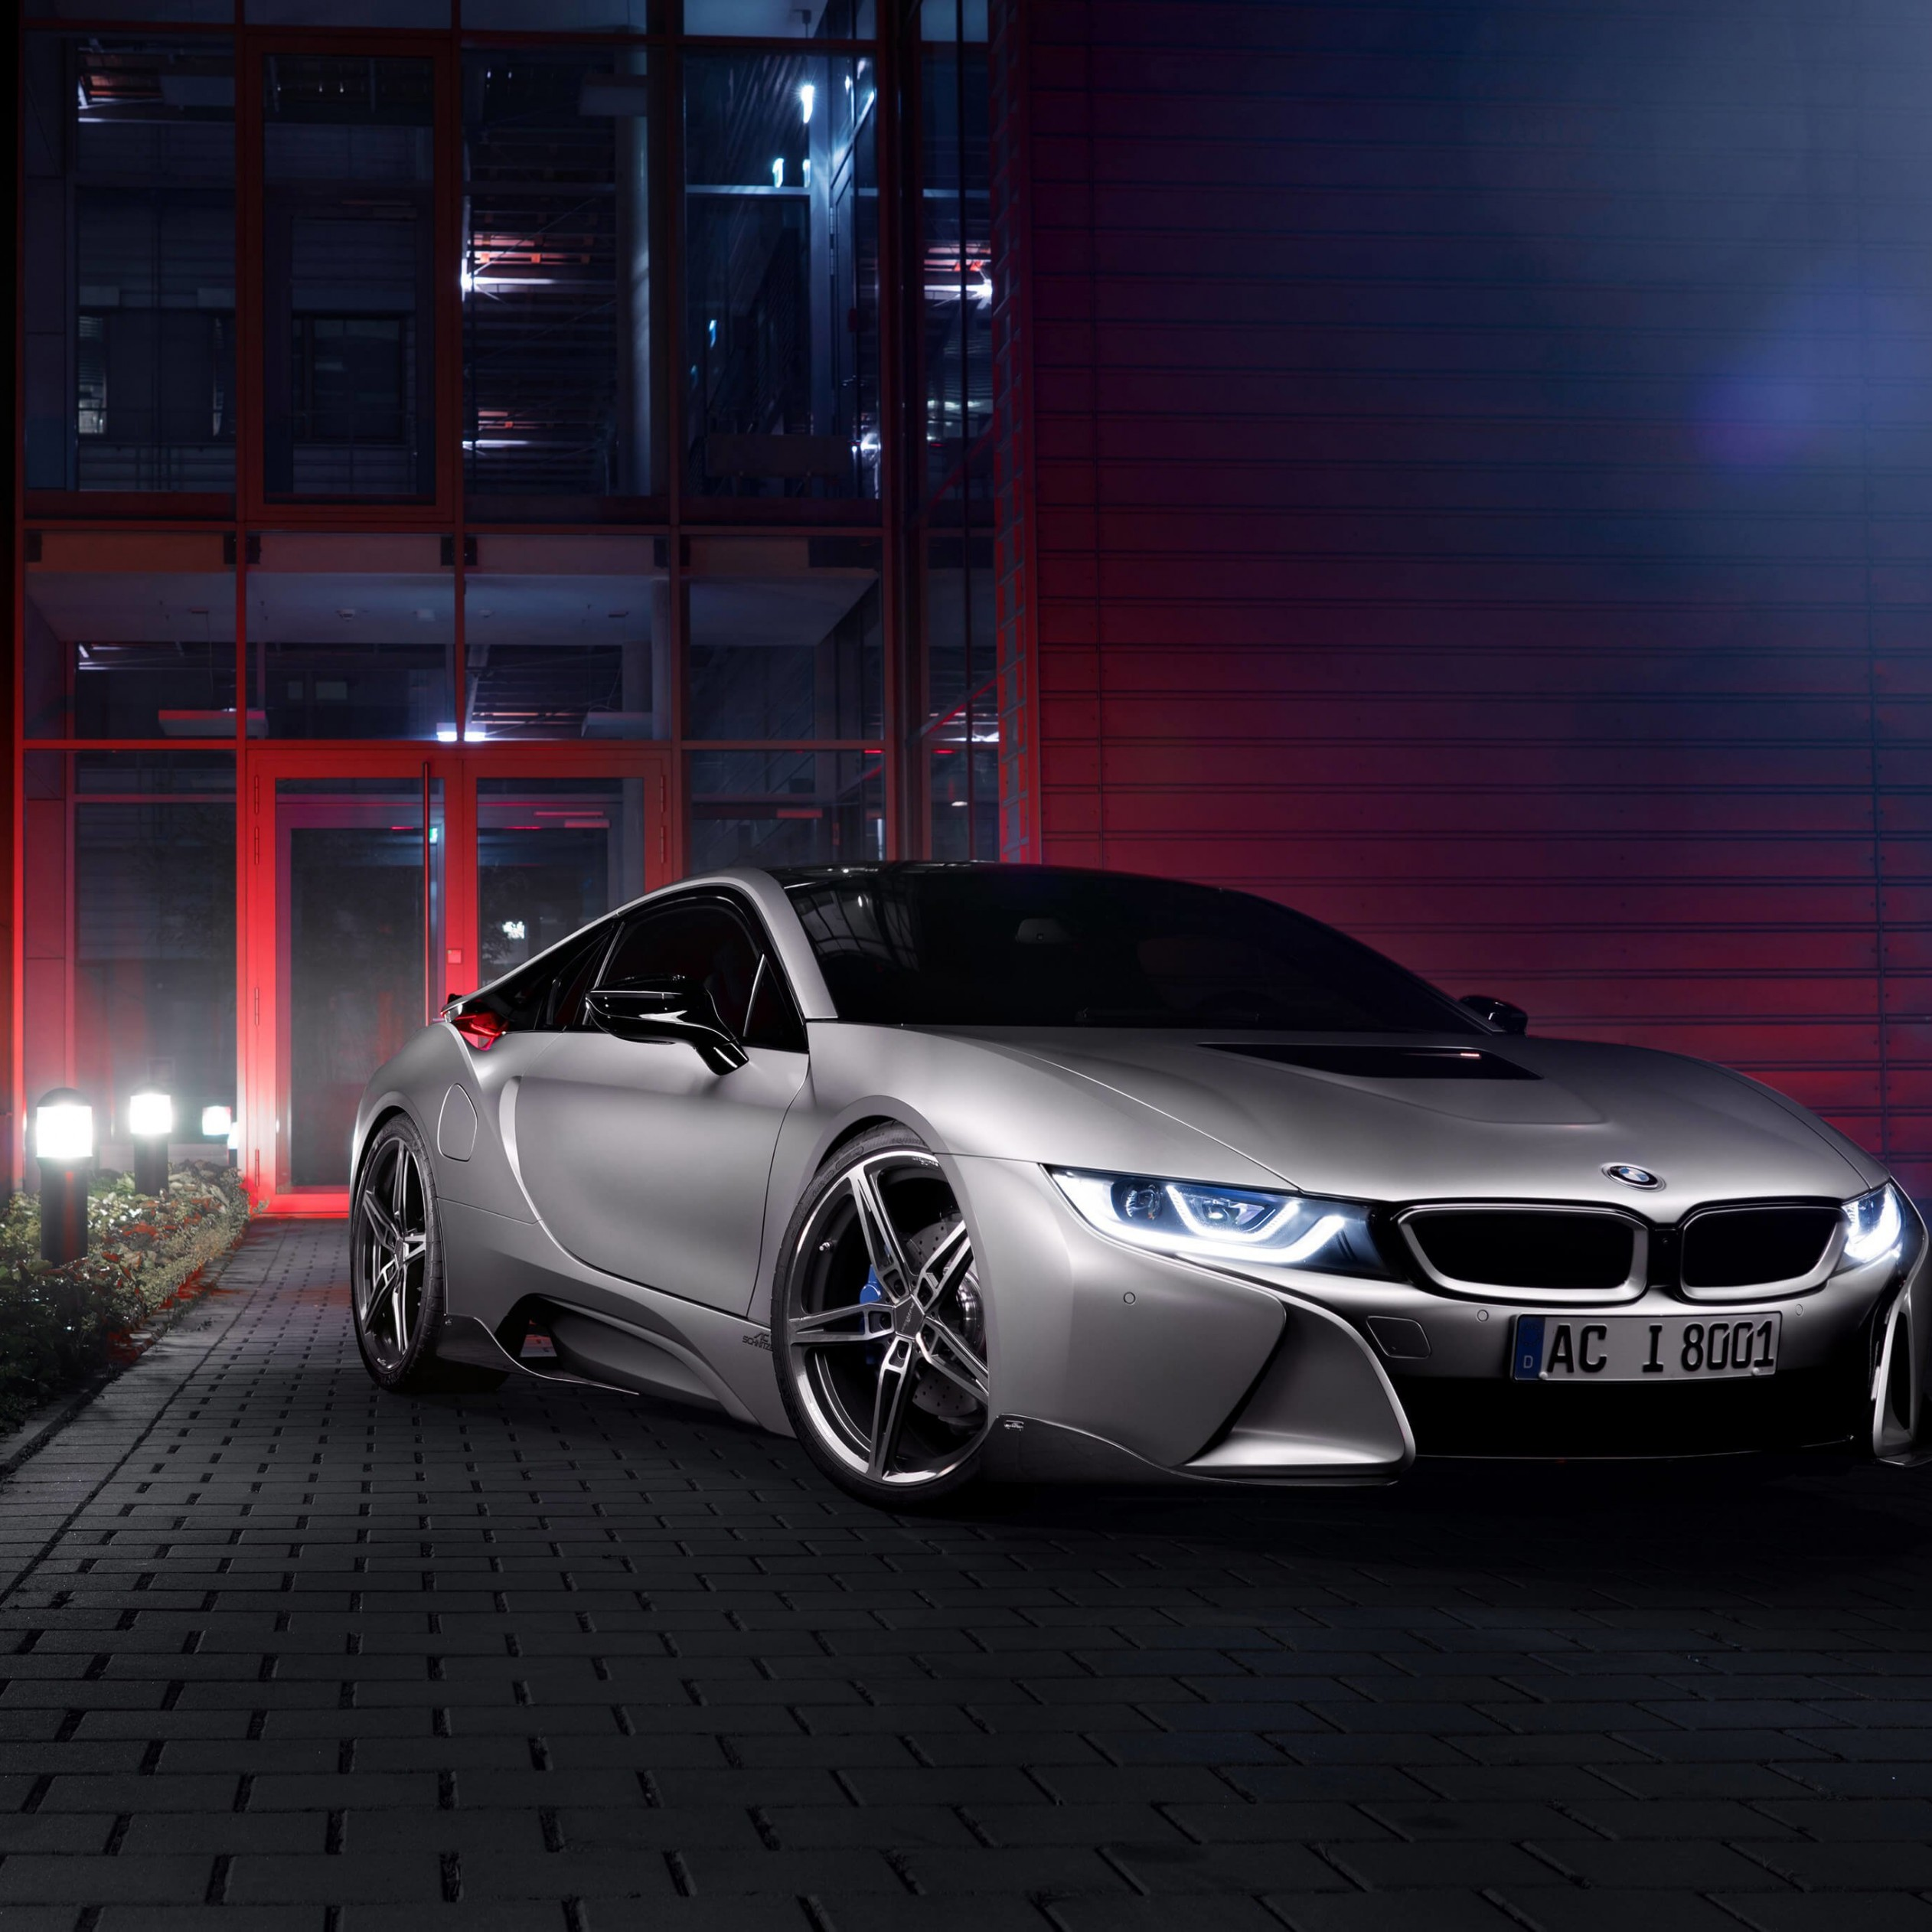 BMW i8 designed by AC Schnitzer Wallpaper for Apple iPad 4